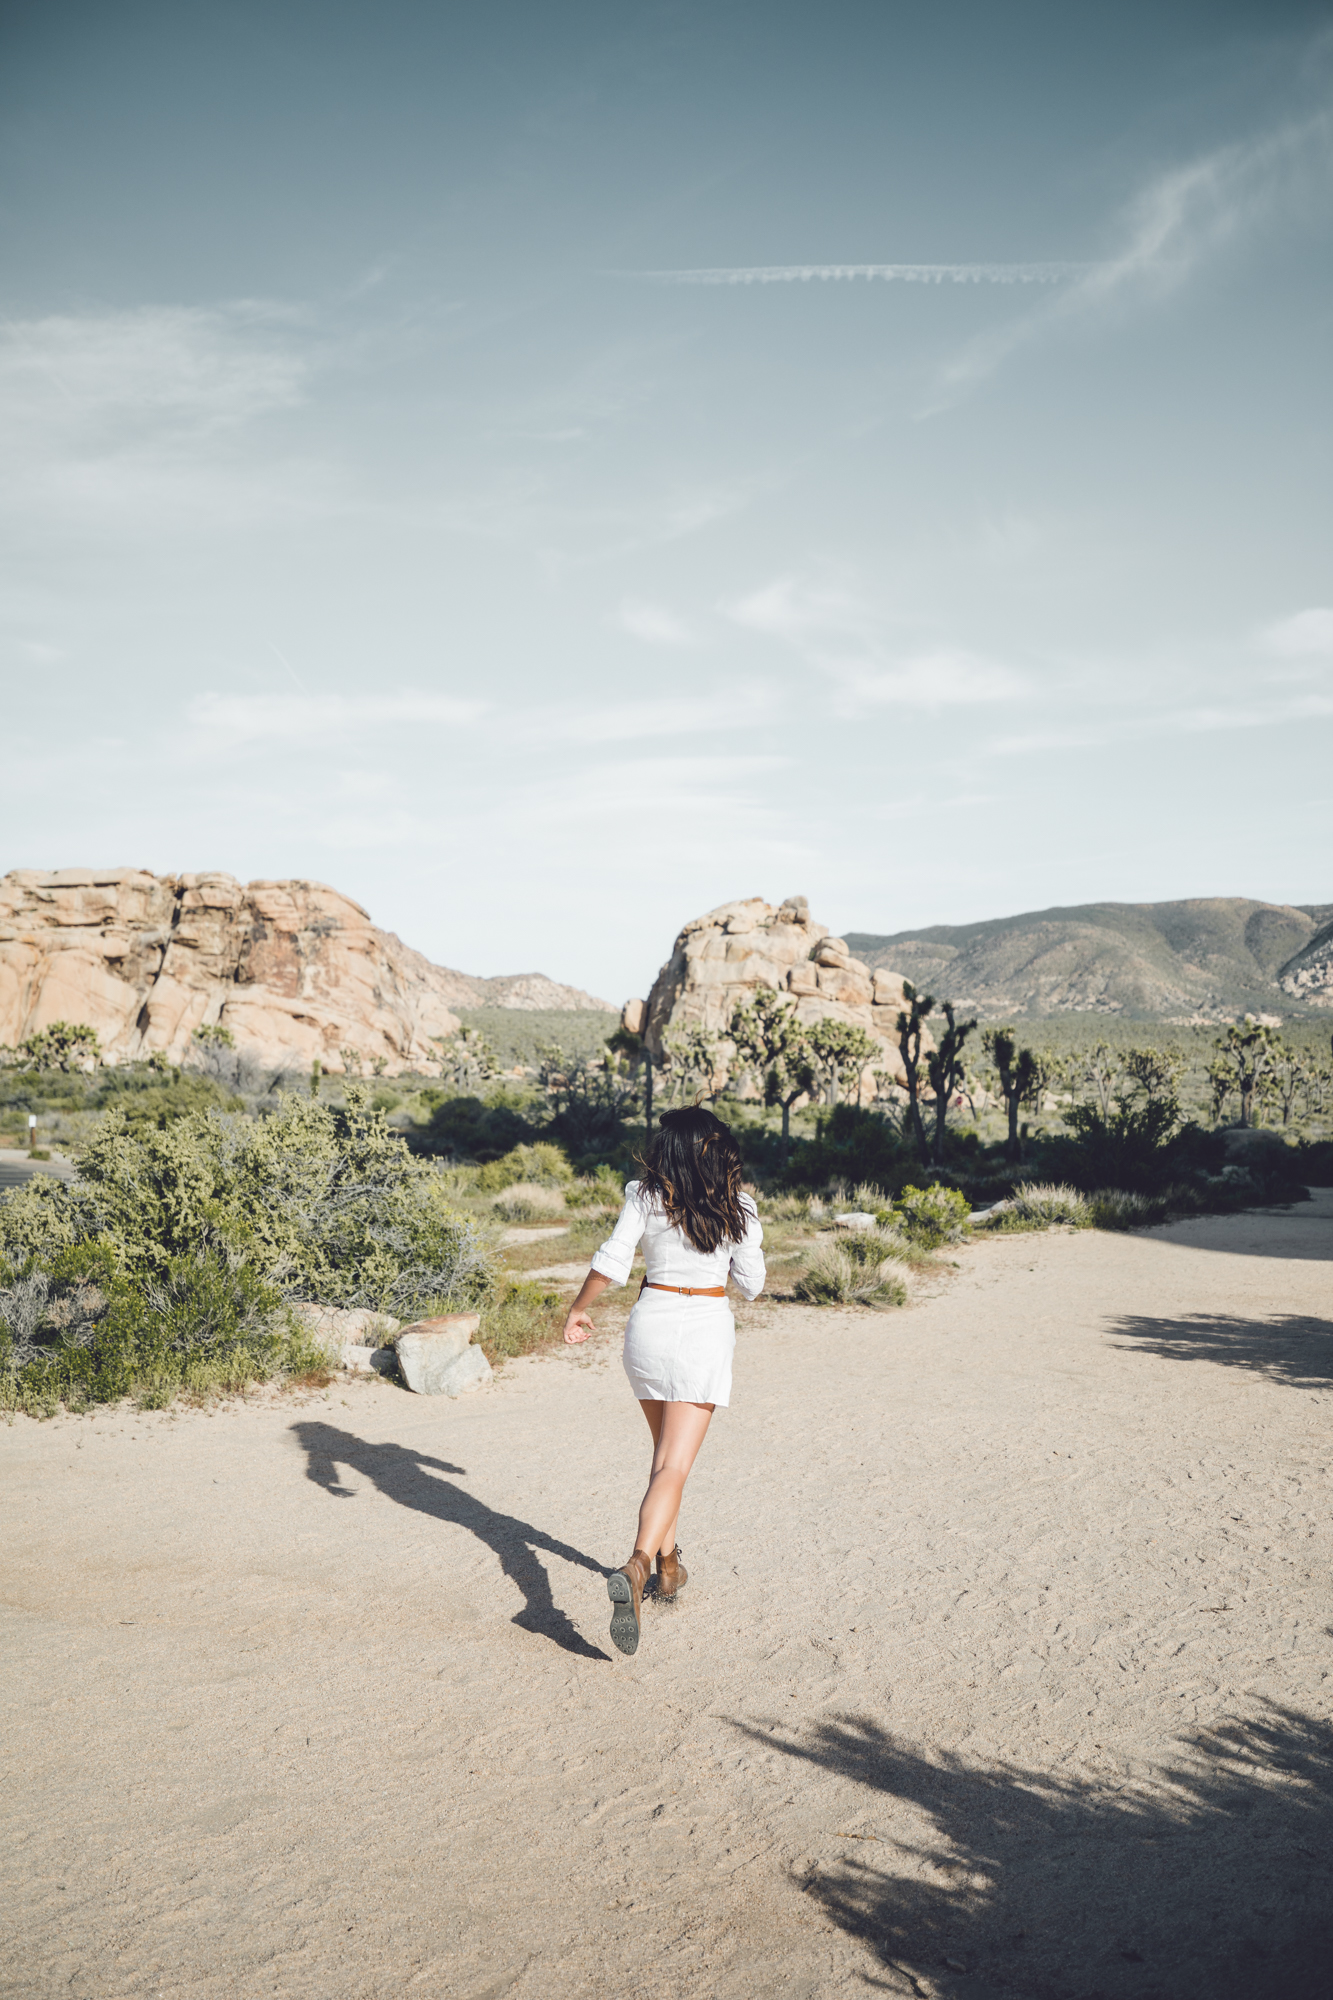 Rachel Off Duty: How to Spend 1 Day in the Central California Desert - Joshua Tree National Park